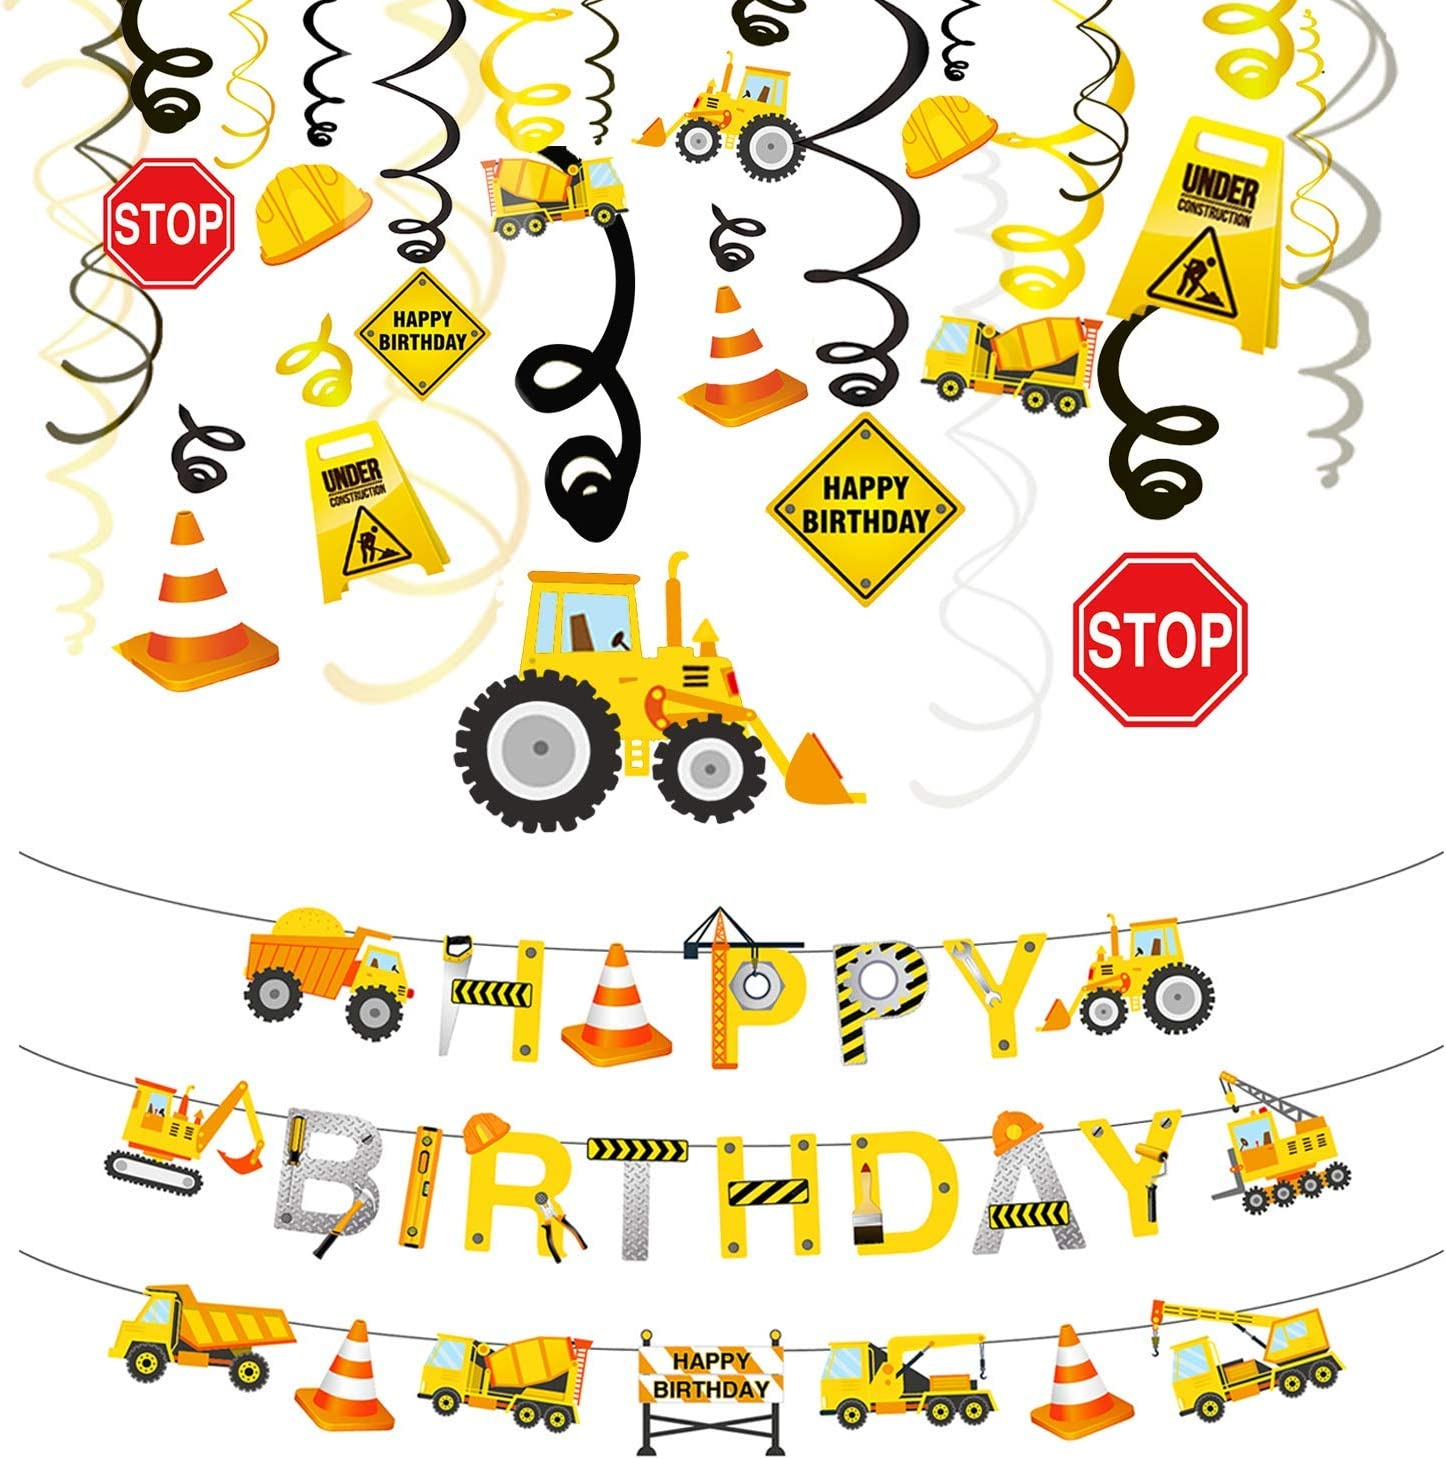 Phogary 31PCS Construction Birthday Party Decorations Set, Boys Birthday Construction Theme Party Favors Supplies Tractor Banner Excavators Bulldozers Dump Trucks Decor